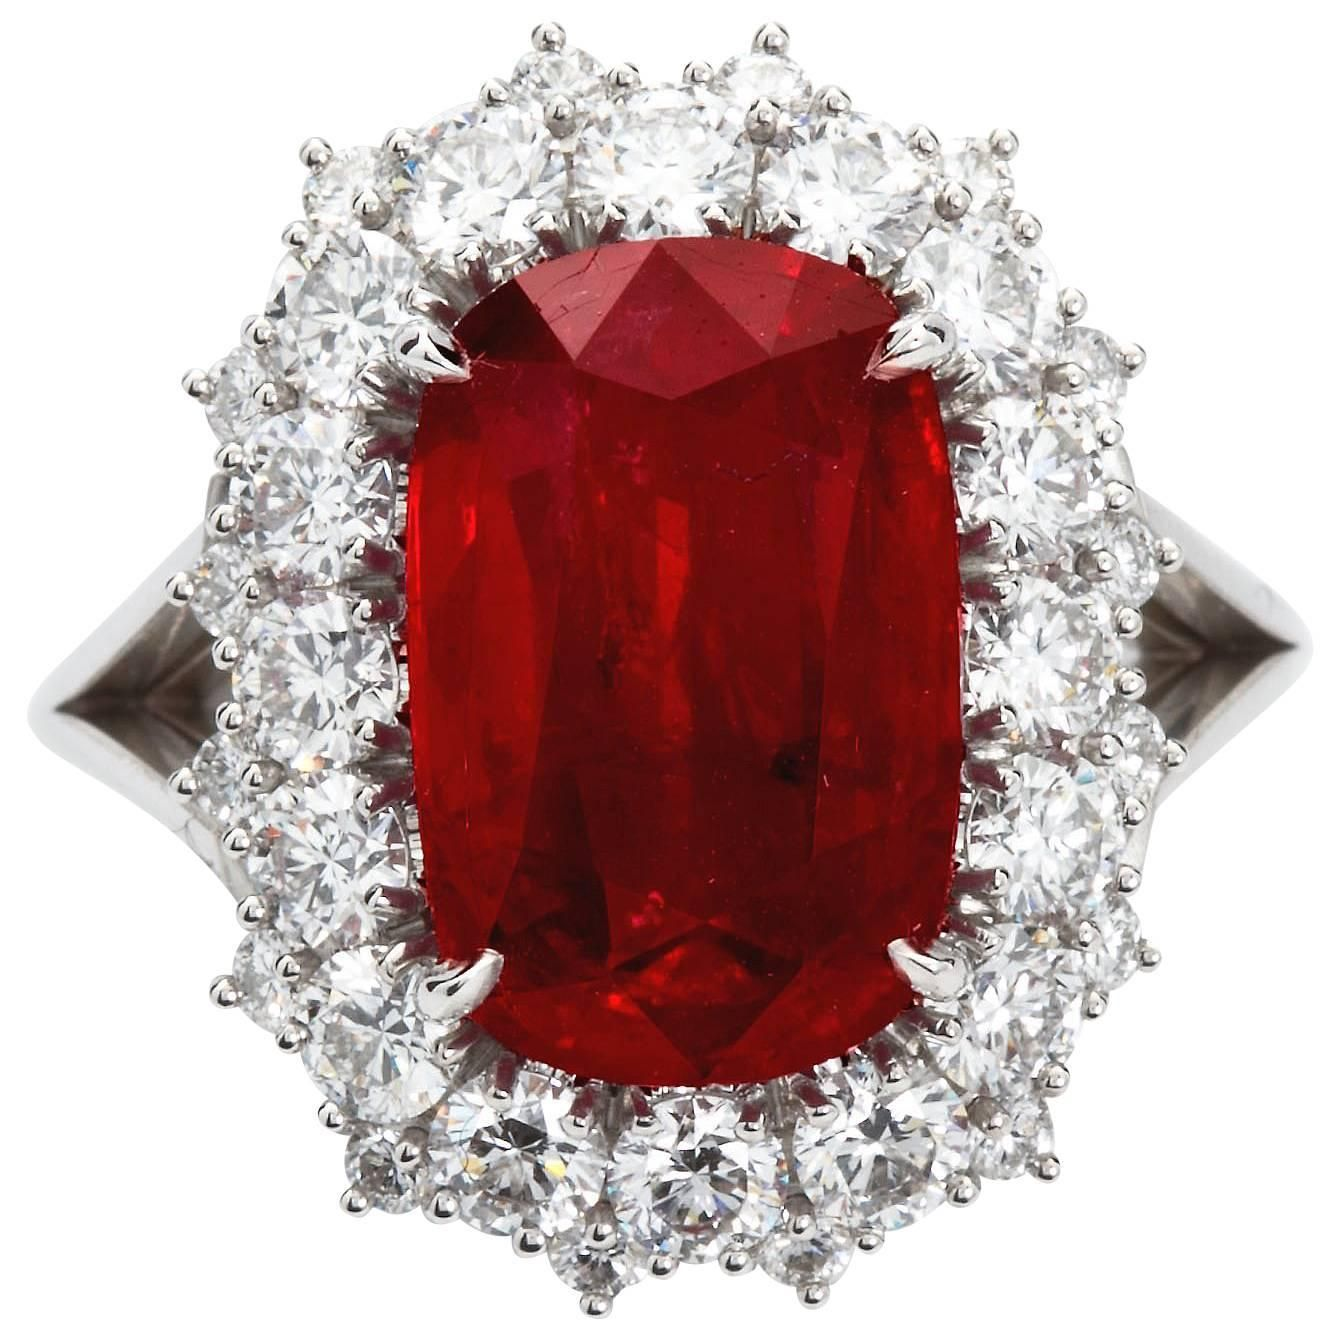 blood youtube rings rare diamond diamonds carat for worth watch auction up millions